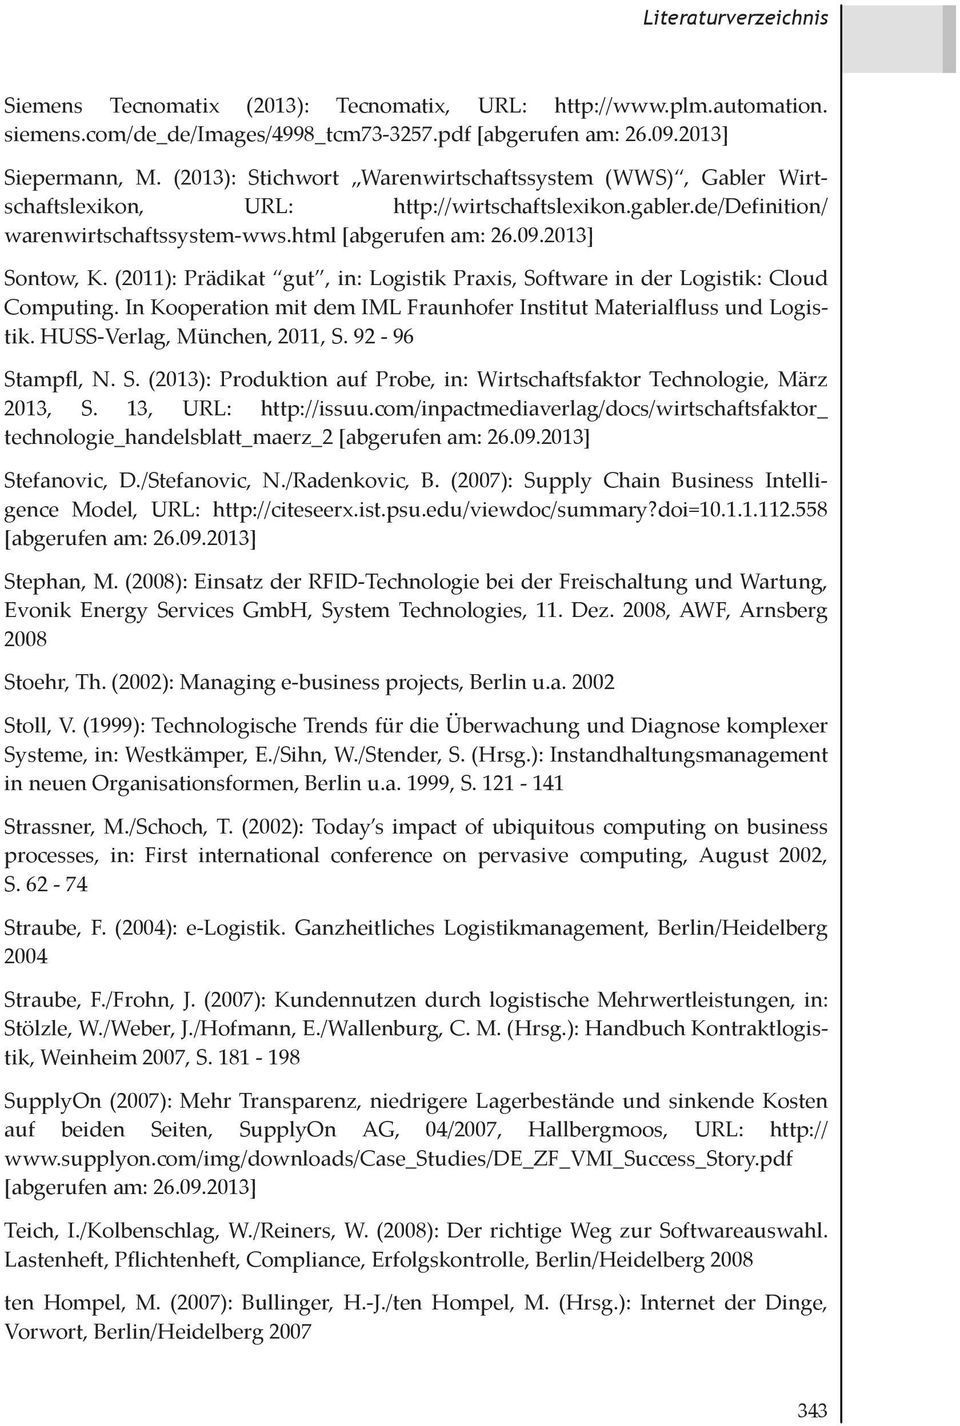 (2011): Prädikat gut, in: Logistik Praxis, Software in der Logistik: Cloud Computing. In Kooperation mit dem IML Fraunhofer Institut Materialfluss und Logistik. HUSS-Verlag, München, 2011, S.